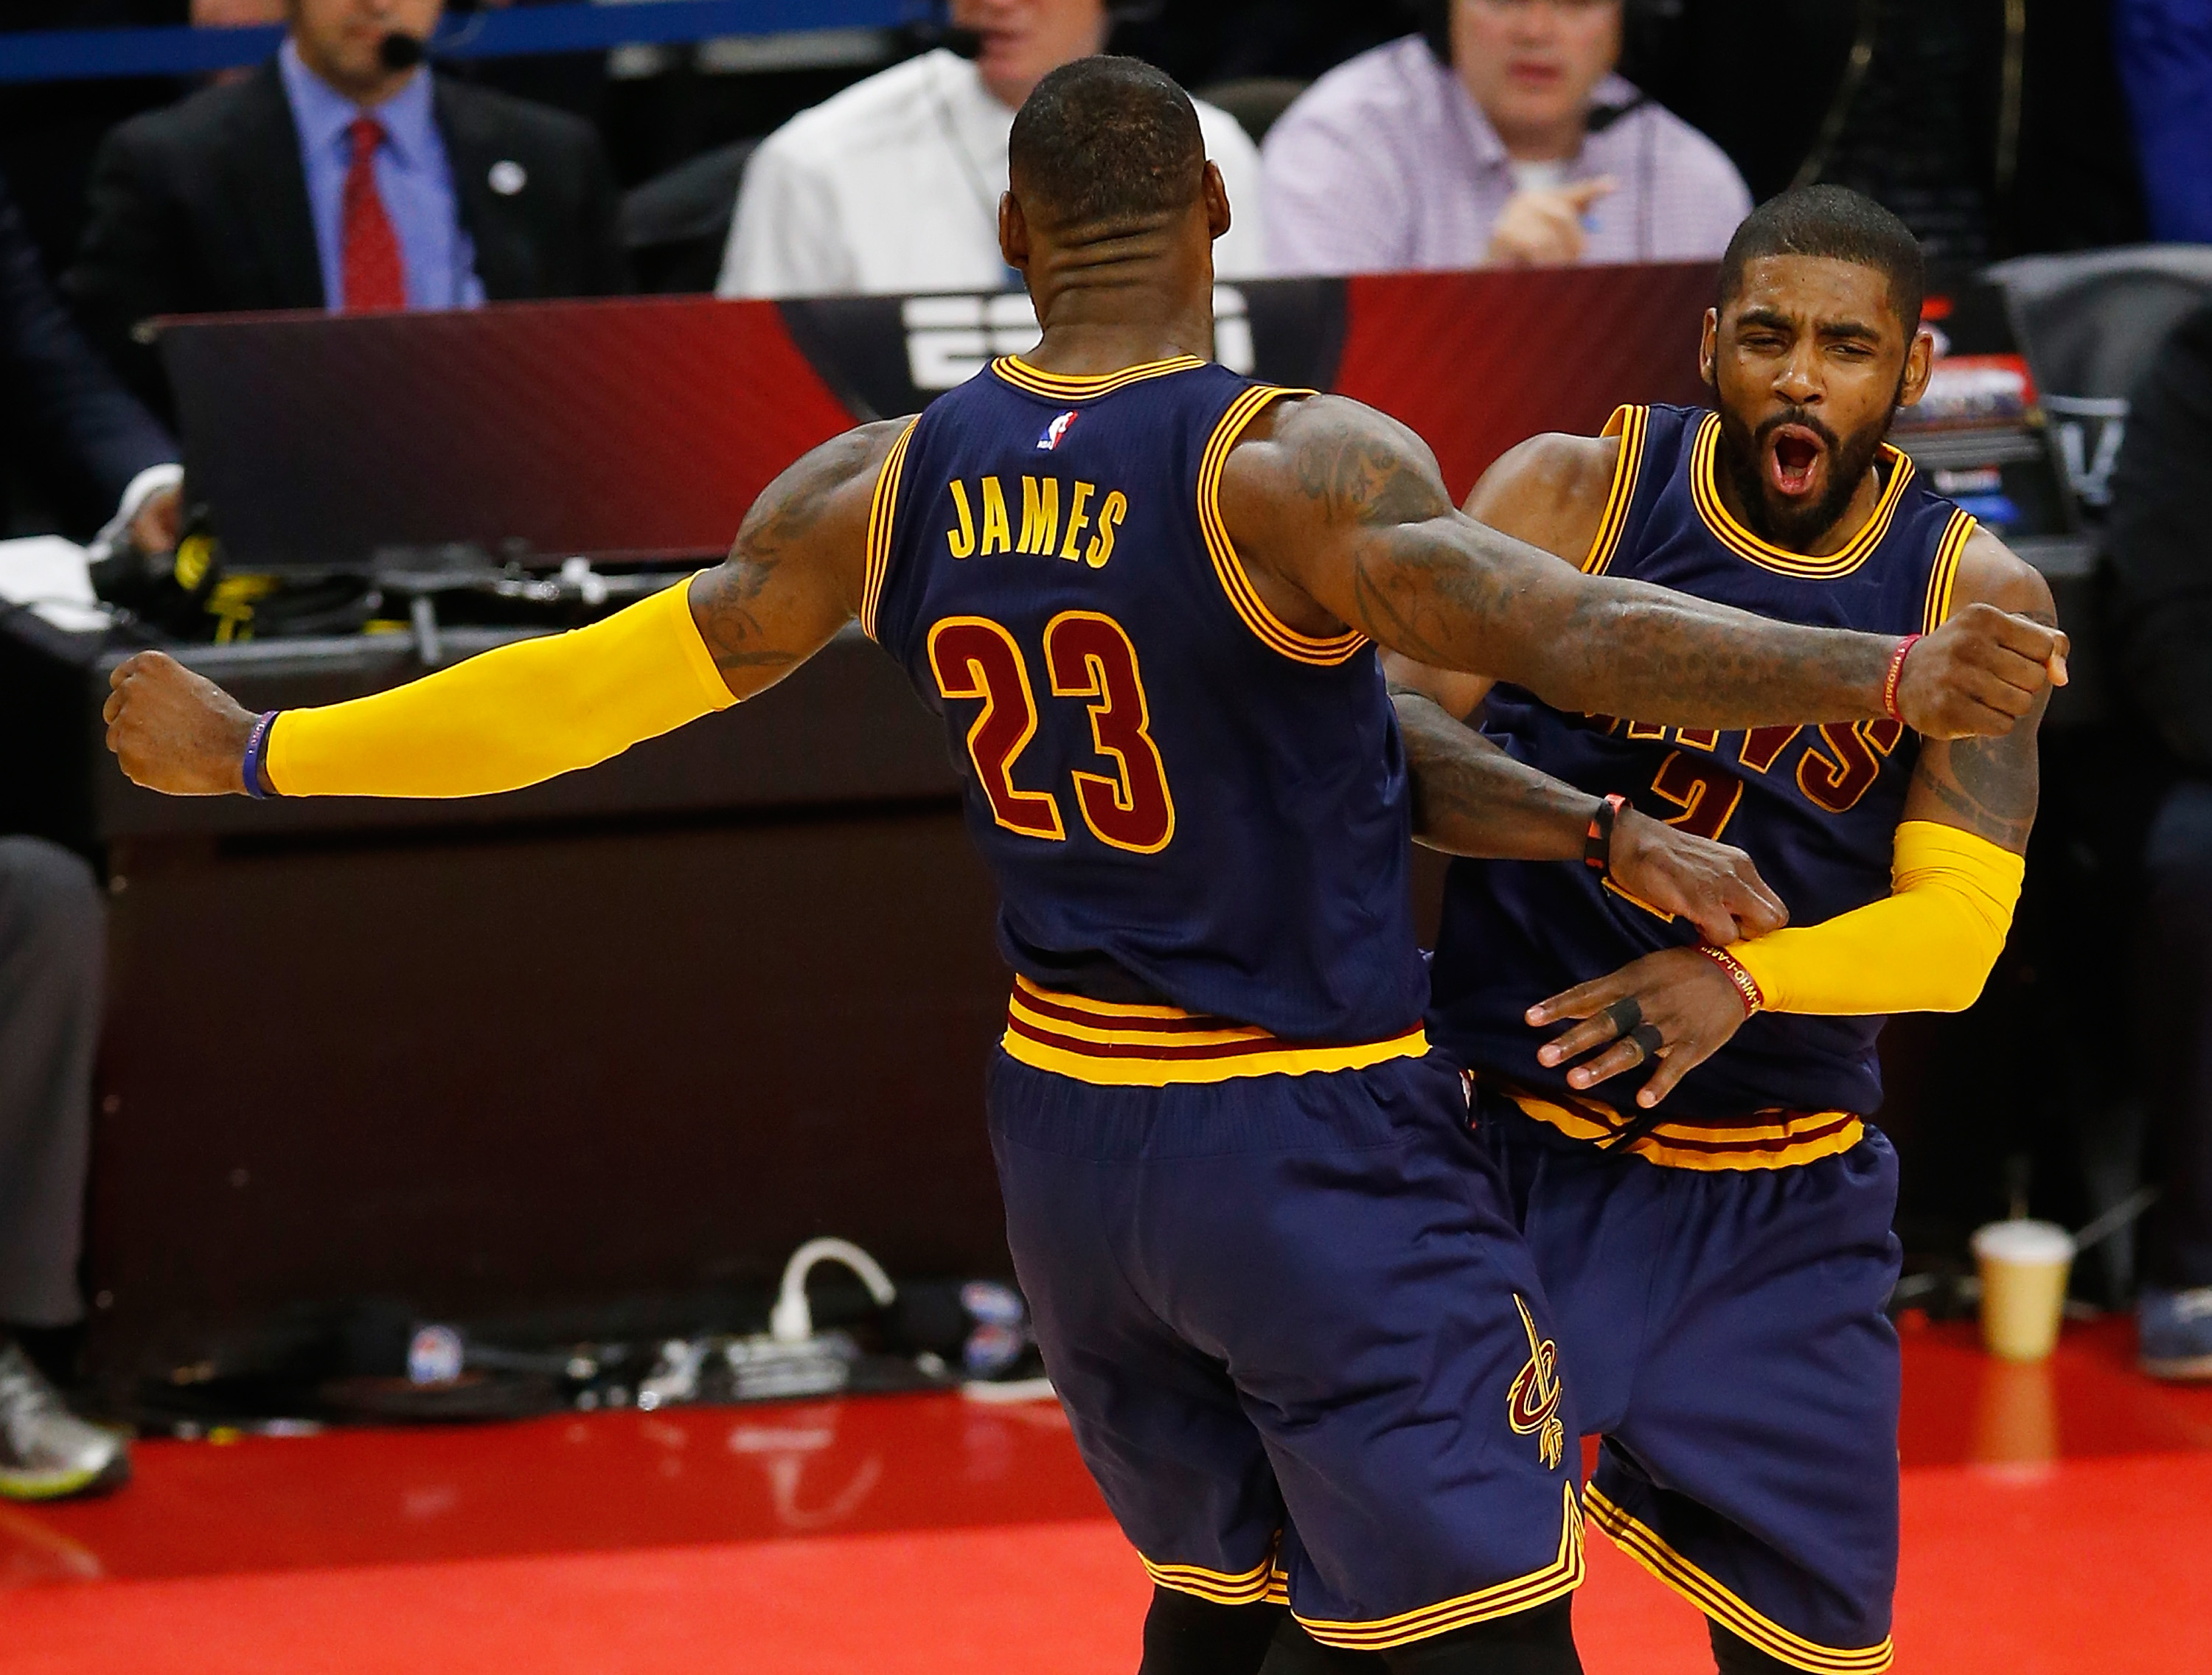 Cavs' Kyrie Irving: Teams Dared Me To Shoot